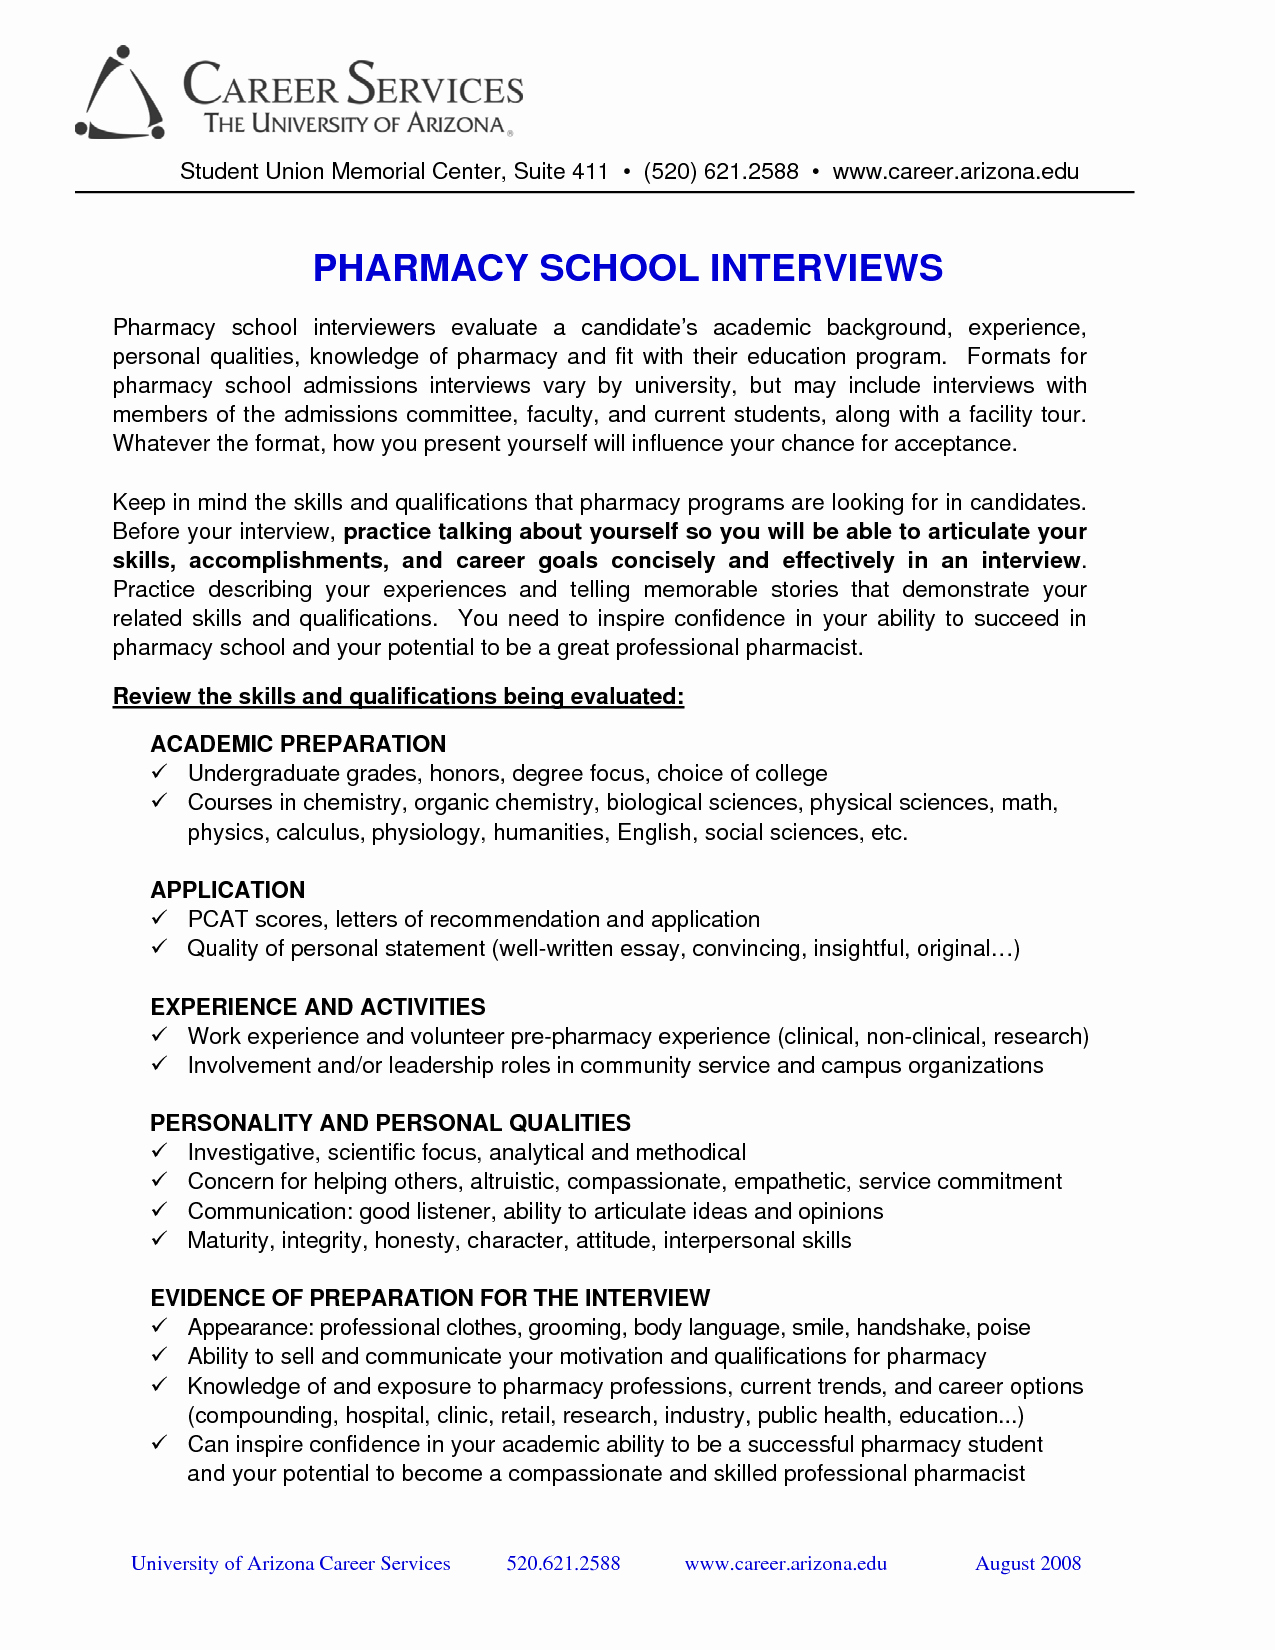 Pharmcas Letter Of Recommendation Fresh Persuasive Essay Ideas for College Persuasive